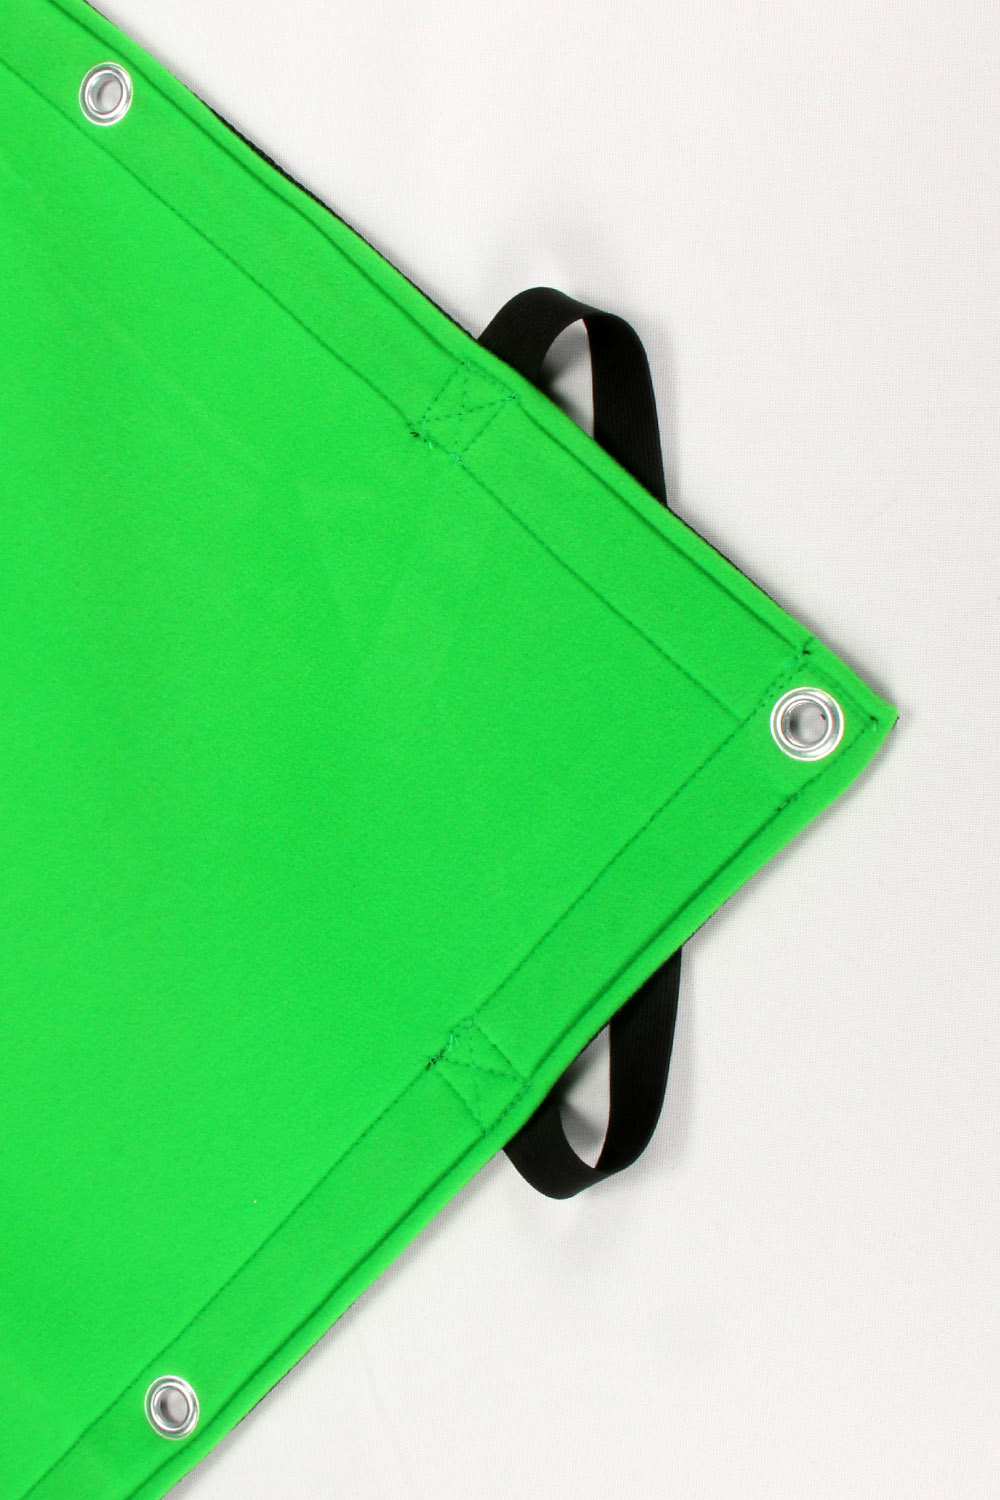 HB GRIP ROMANIA, Lighting accessories, Chromakey Green Digifoam